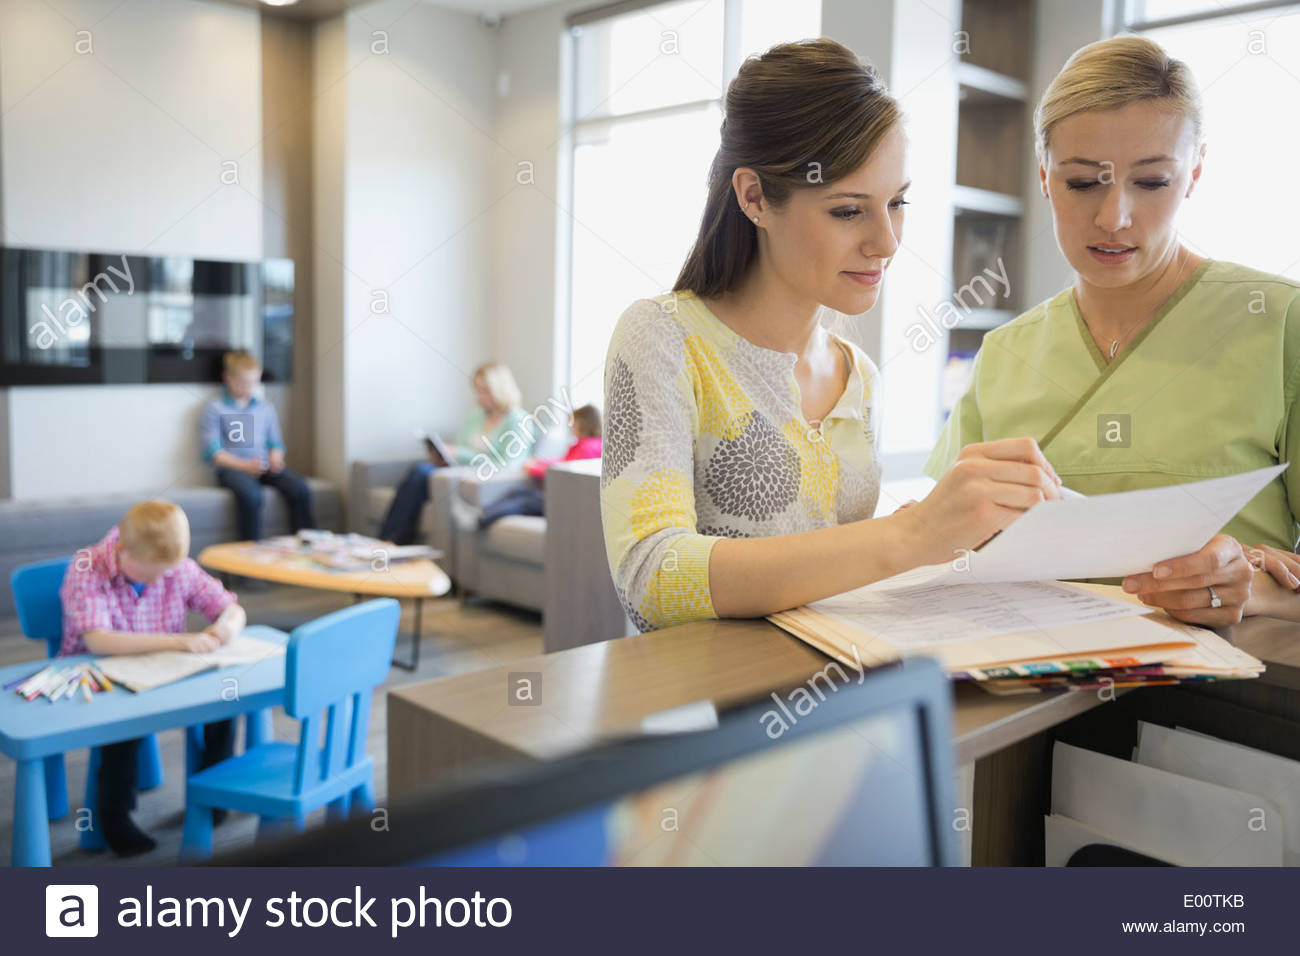 Elegant Dental Assistant And Receptionist Reviewing Medical Records   Stock Image